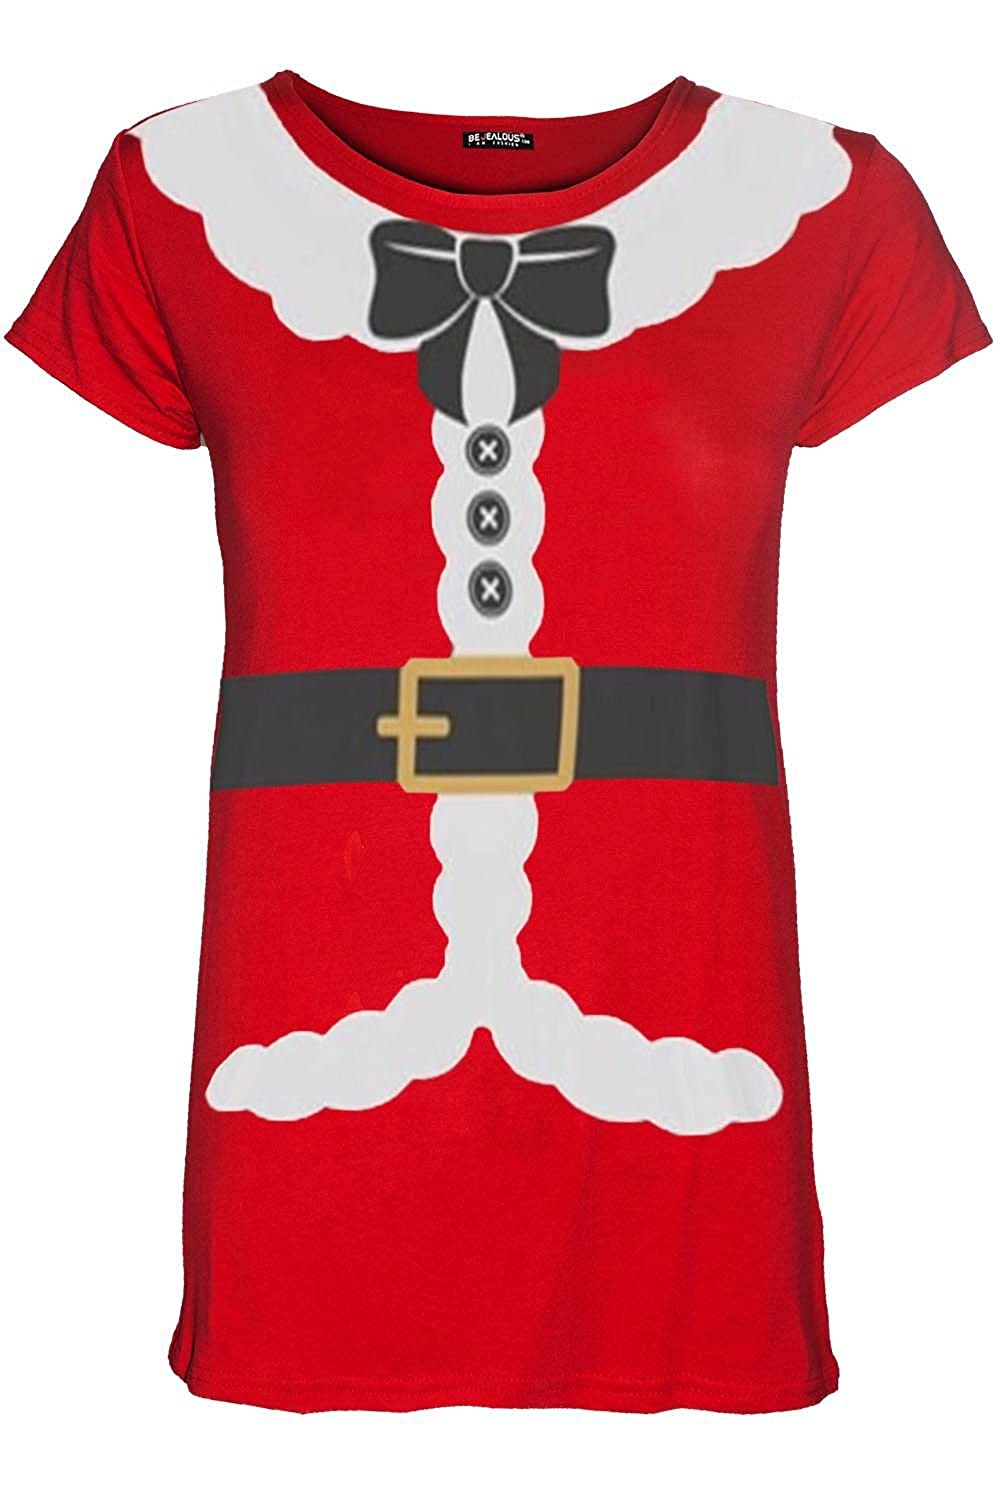 Oops Outlet Kids Girls Christmas Xmas Santa Claus Father Suit Ribbon Belt Costume Tshirt Top